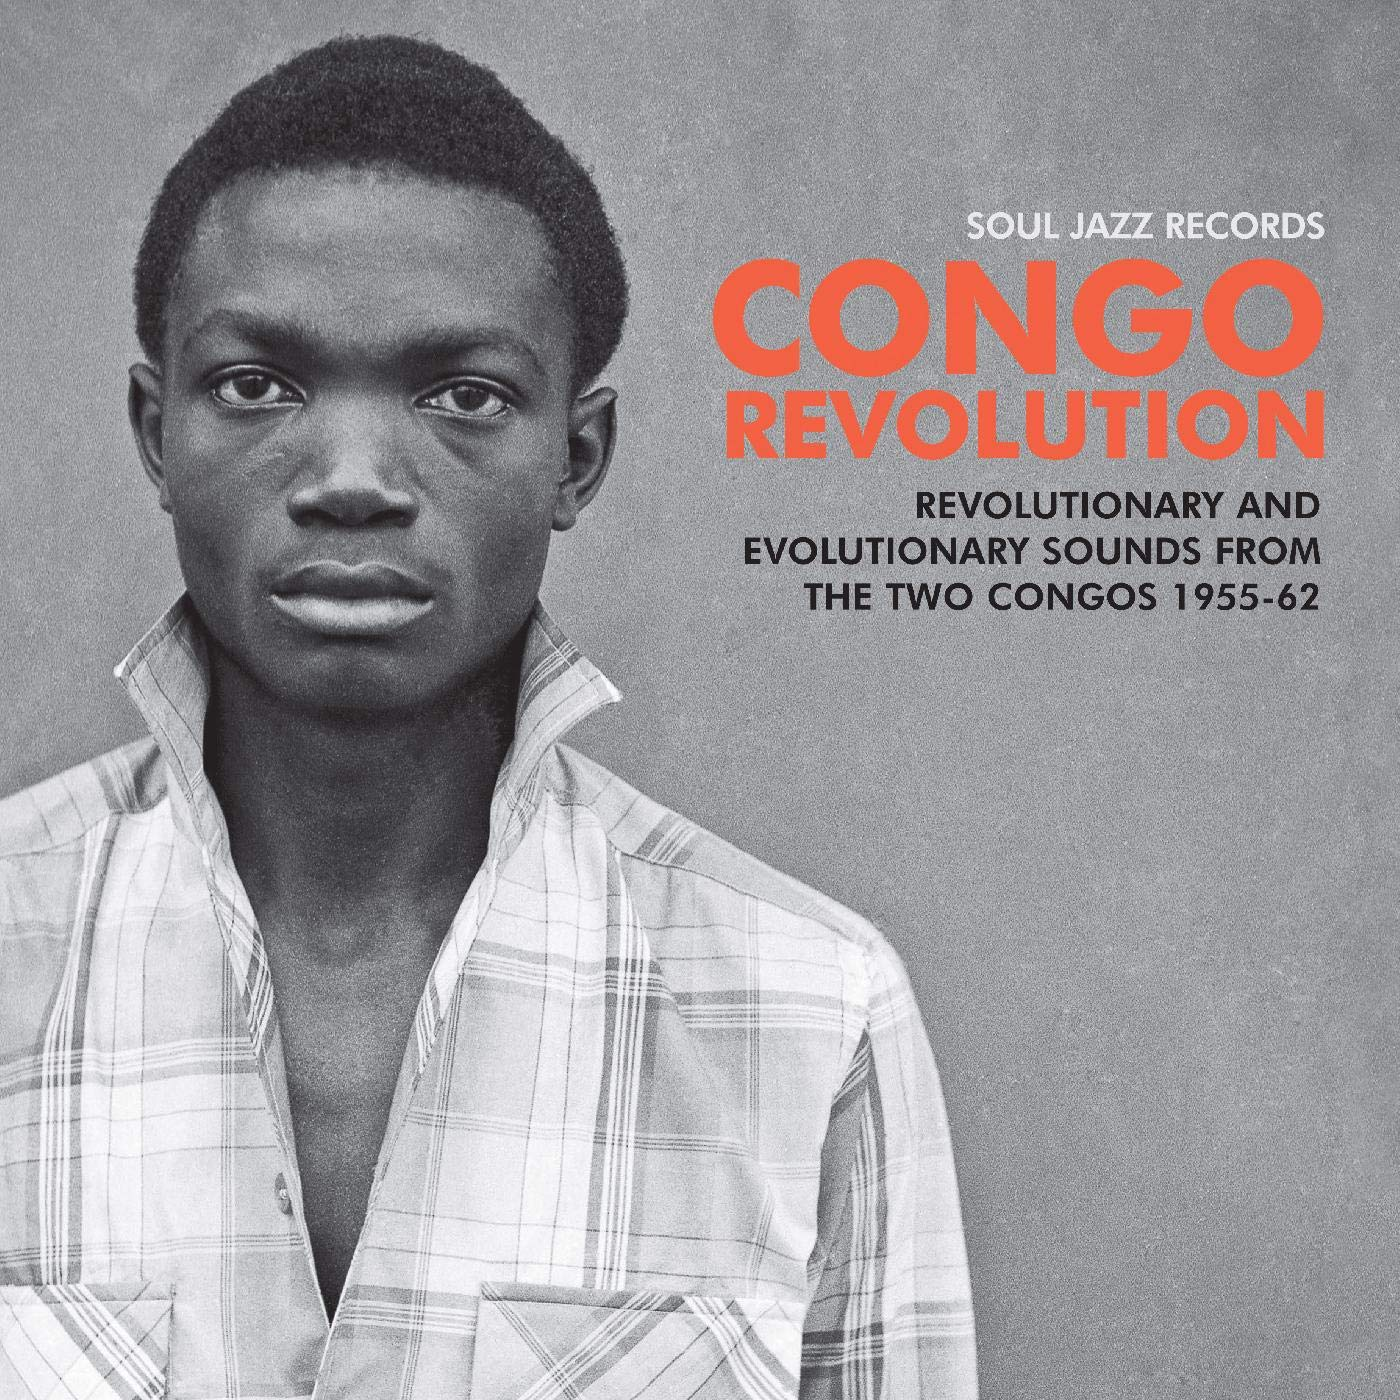 Various Artists - Soul Jazz Records Presents Congo Revolution: Revolutionary And Evolutionary Sounds From The Two Congos 1955-62 [2LP] (gatefold, extensive sleeve notes)